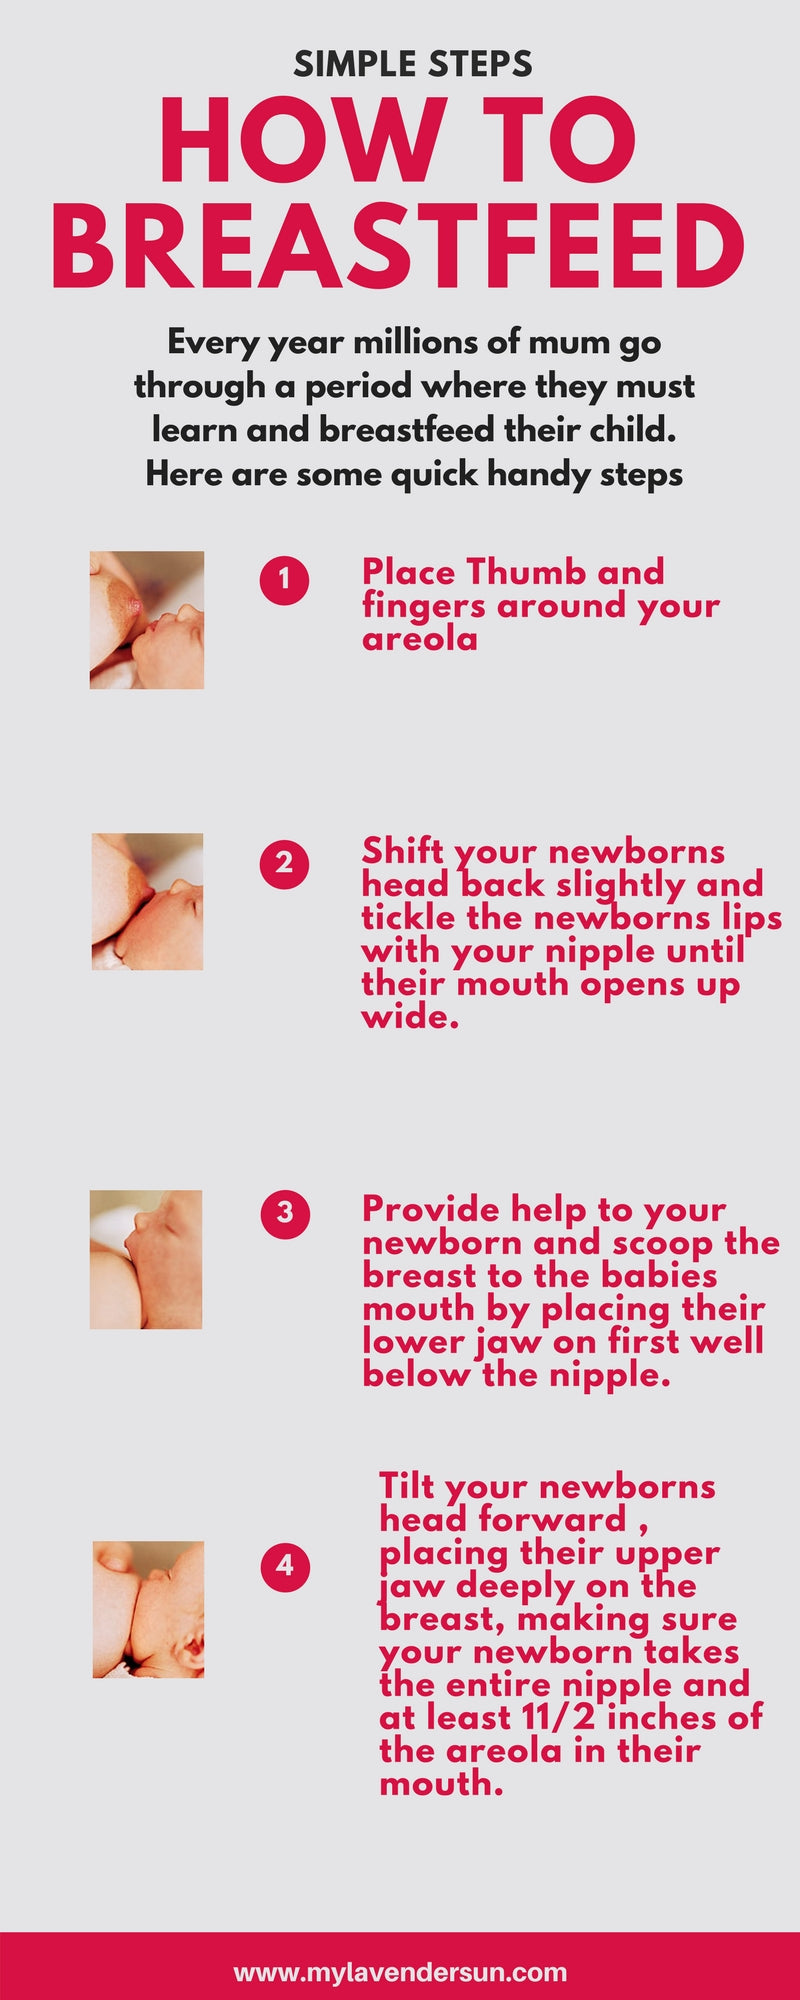 How to breastfeed